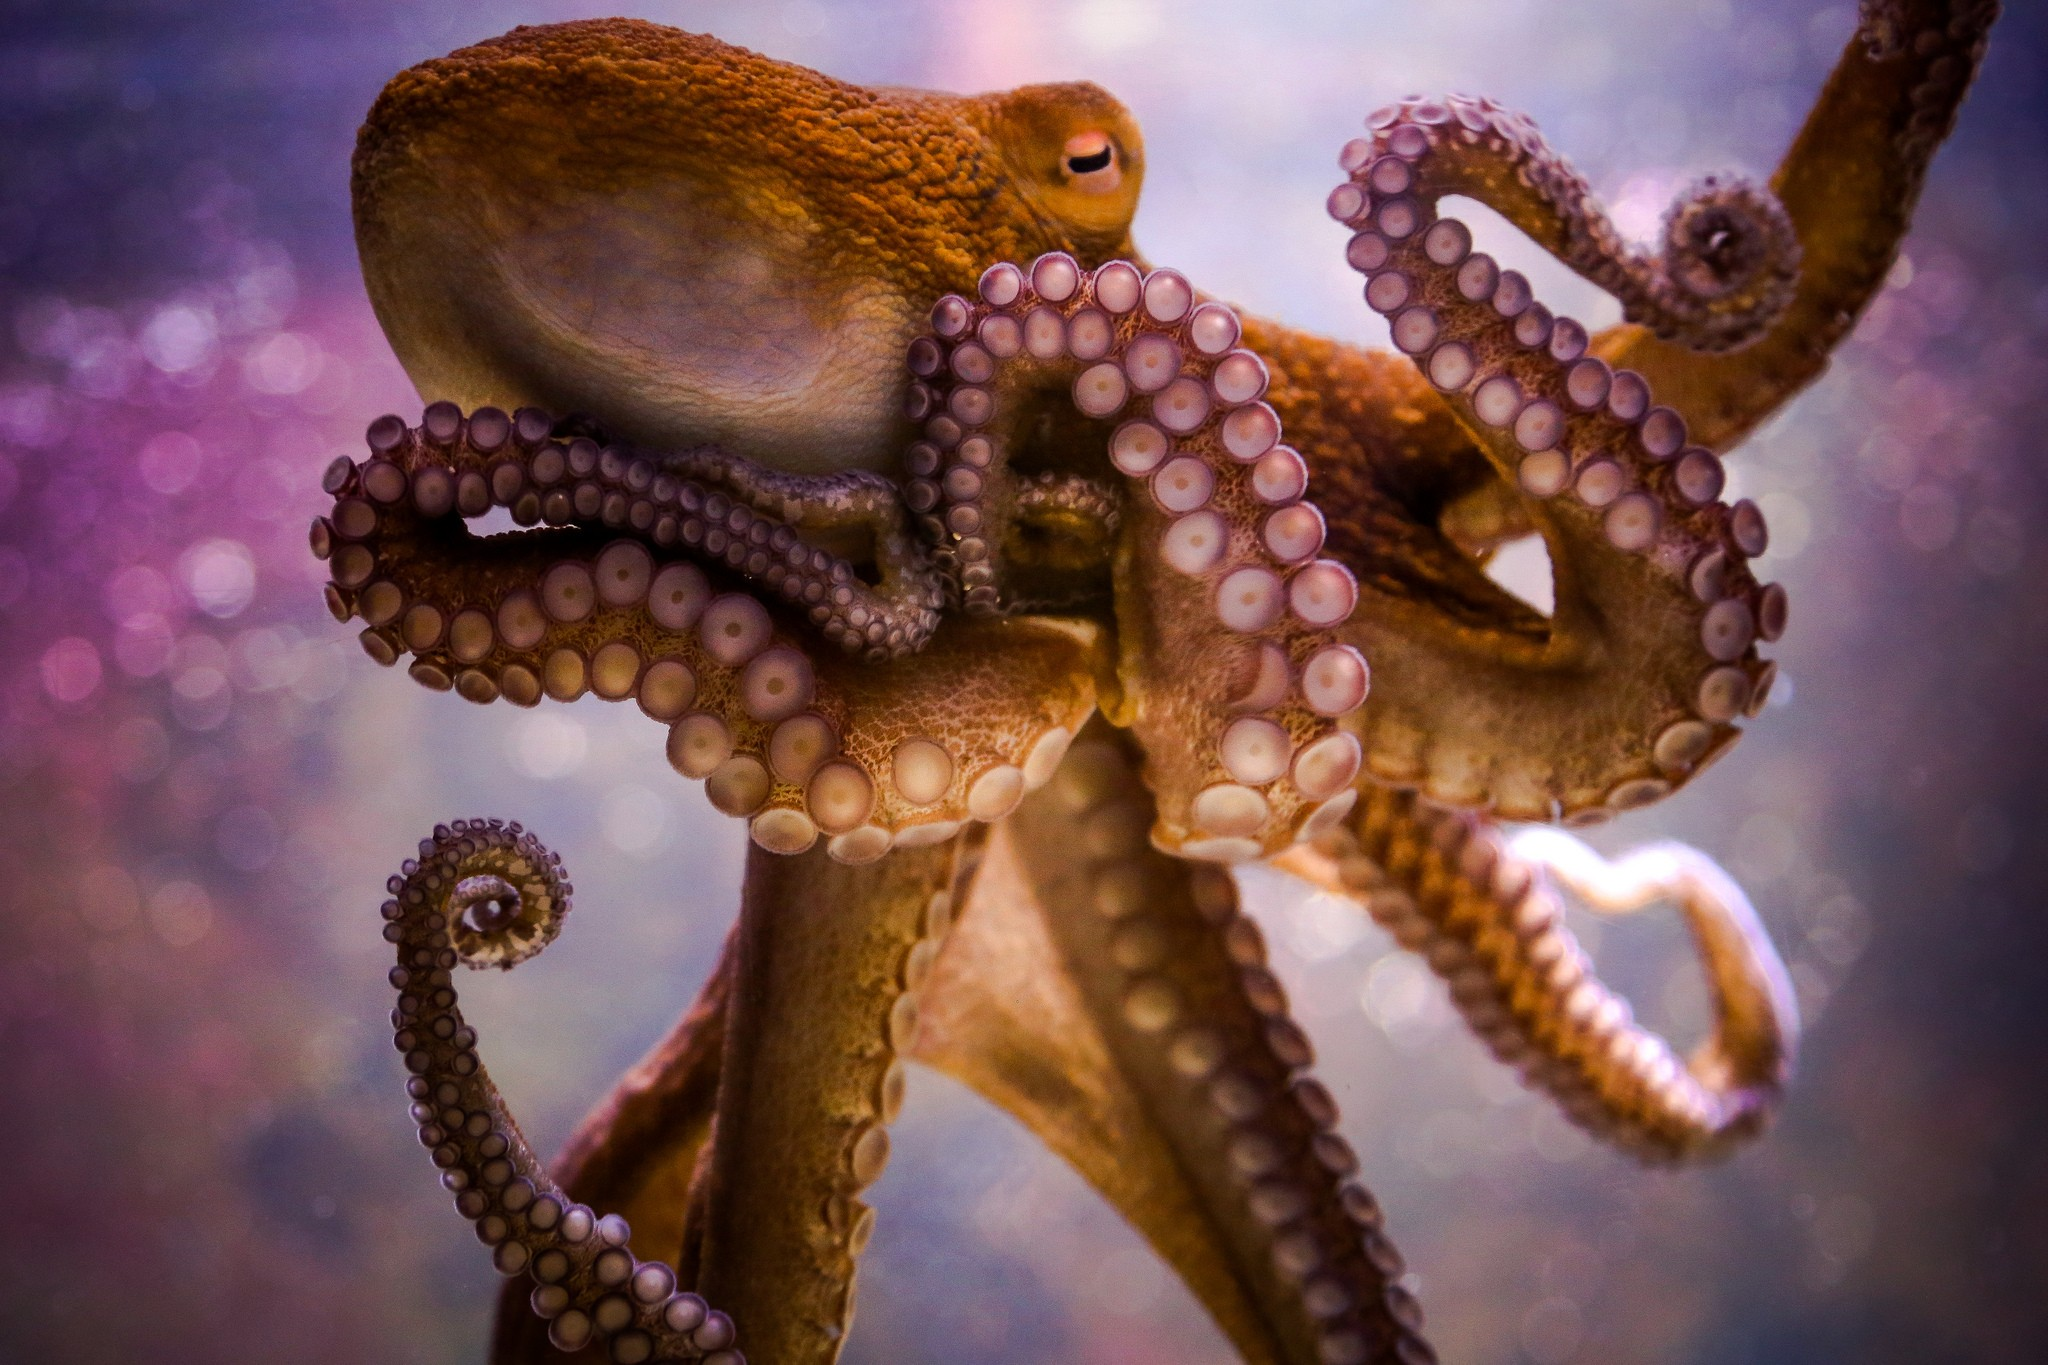 how the octopus close season affected The octopus does this by squirting jets of water from its bag-like body it draws water into its body cavity then forces it out from a tube under its head the force of the water squirting out pushes the octopus along, allowing it to swim backward through the ocean.